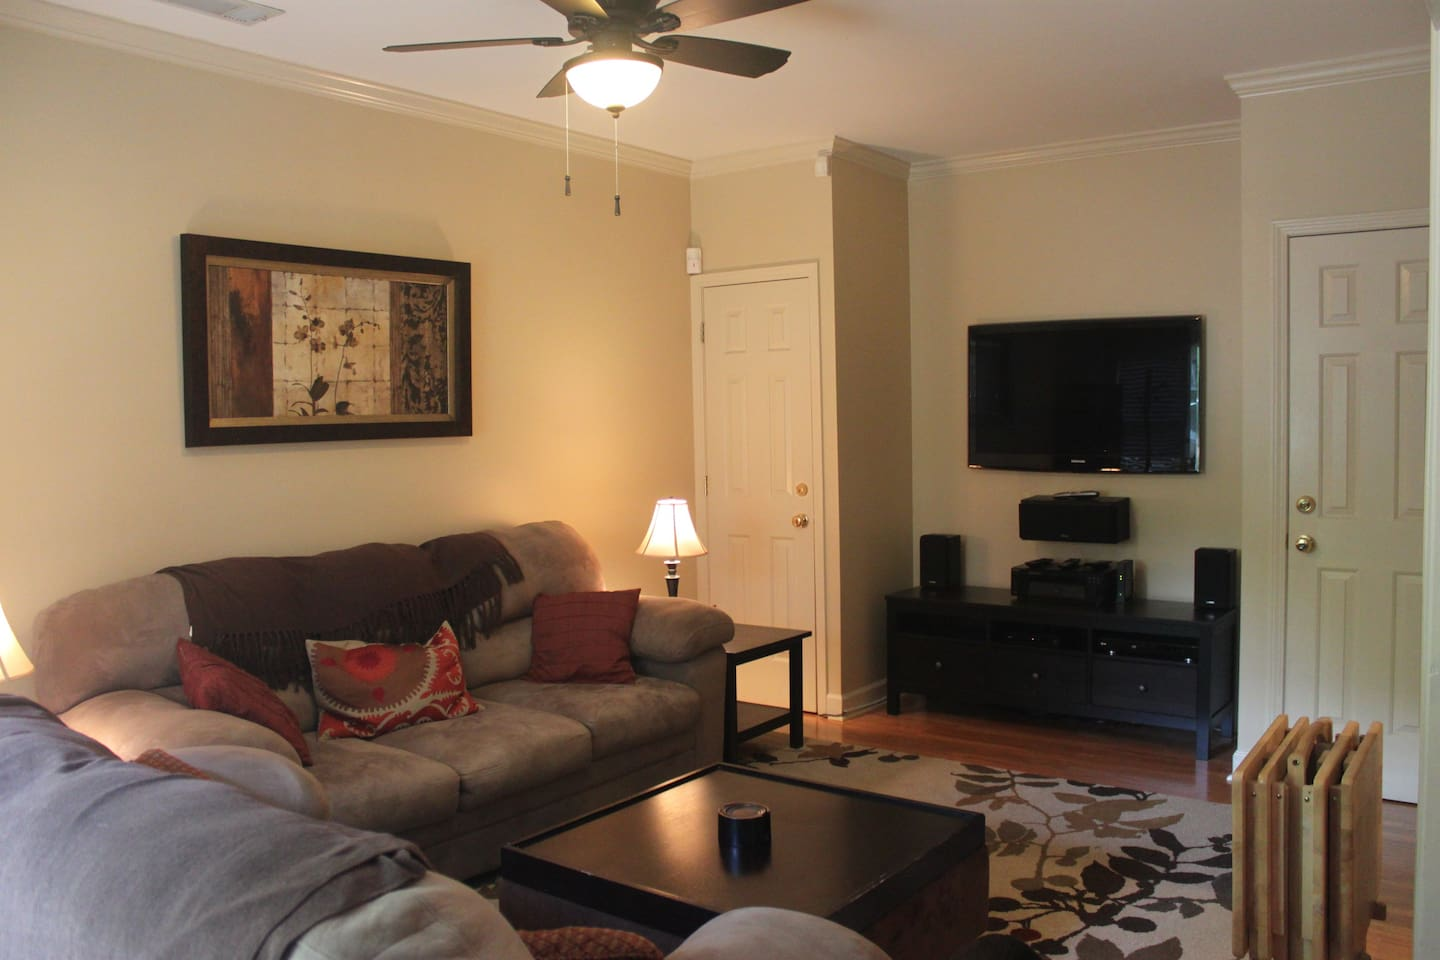 HDTV with surround sound available in living room